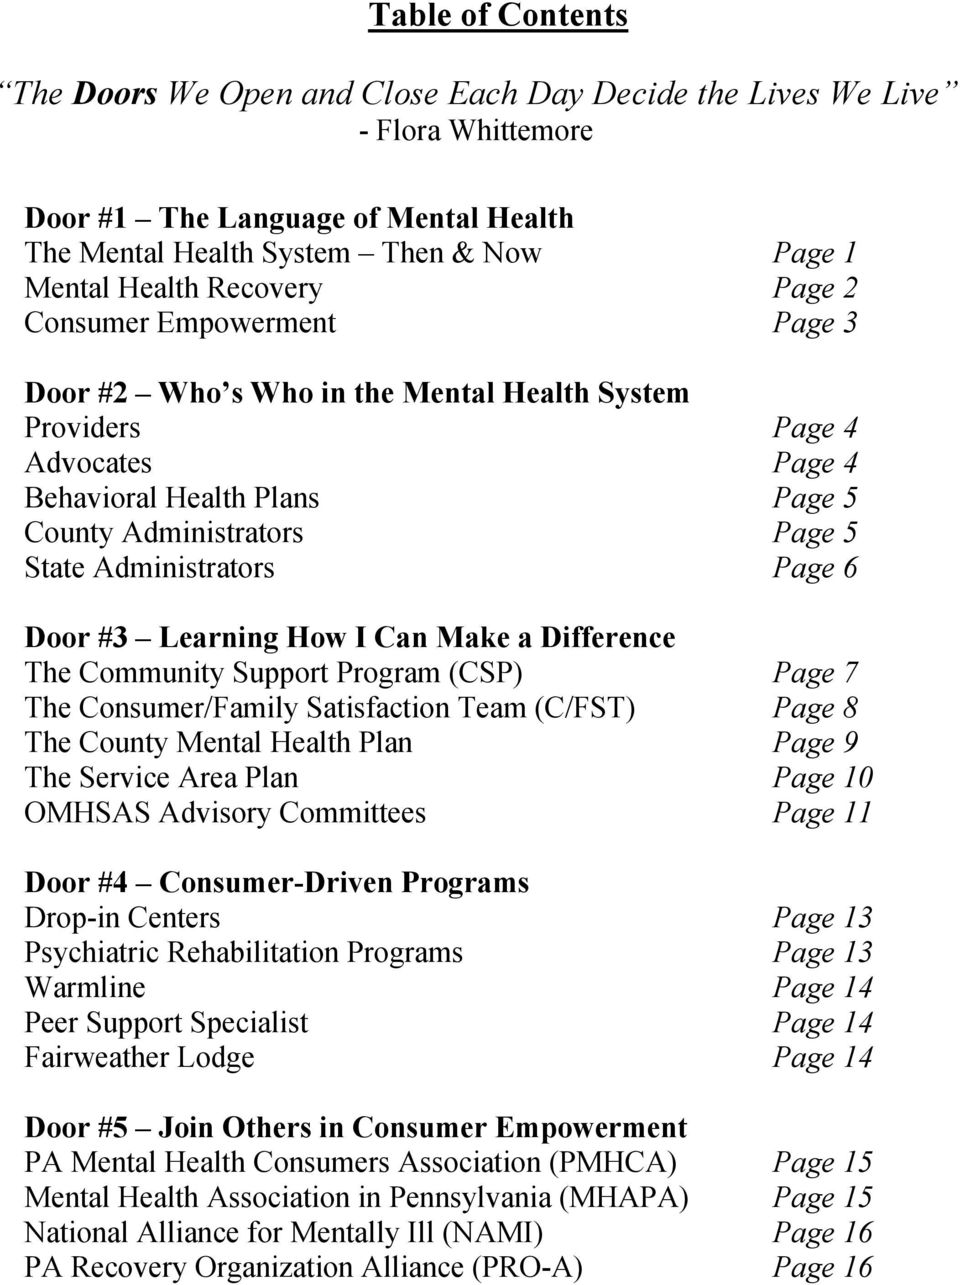 The Community Support Program (CSP) The Consumer/Family Satisfaction Team (C/FST) The County Mental Health Plan The Service Area Plan OMHSAS Advisory Committees Door #4 Consumer-Driven Programs